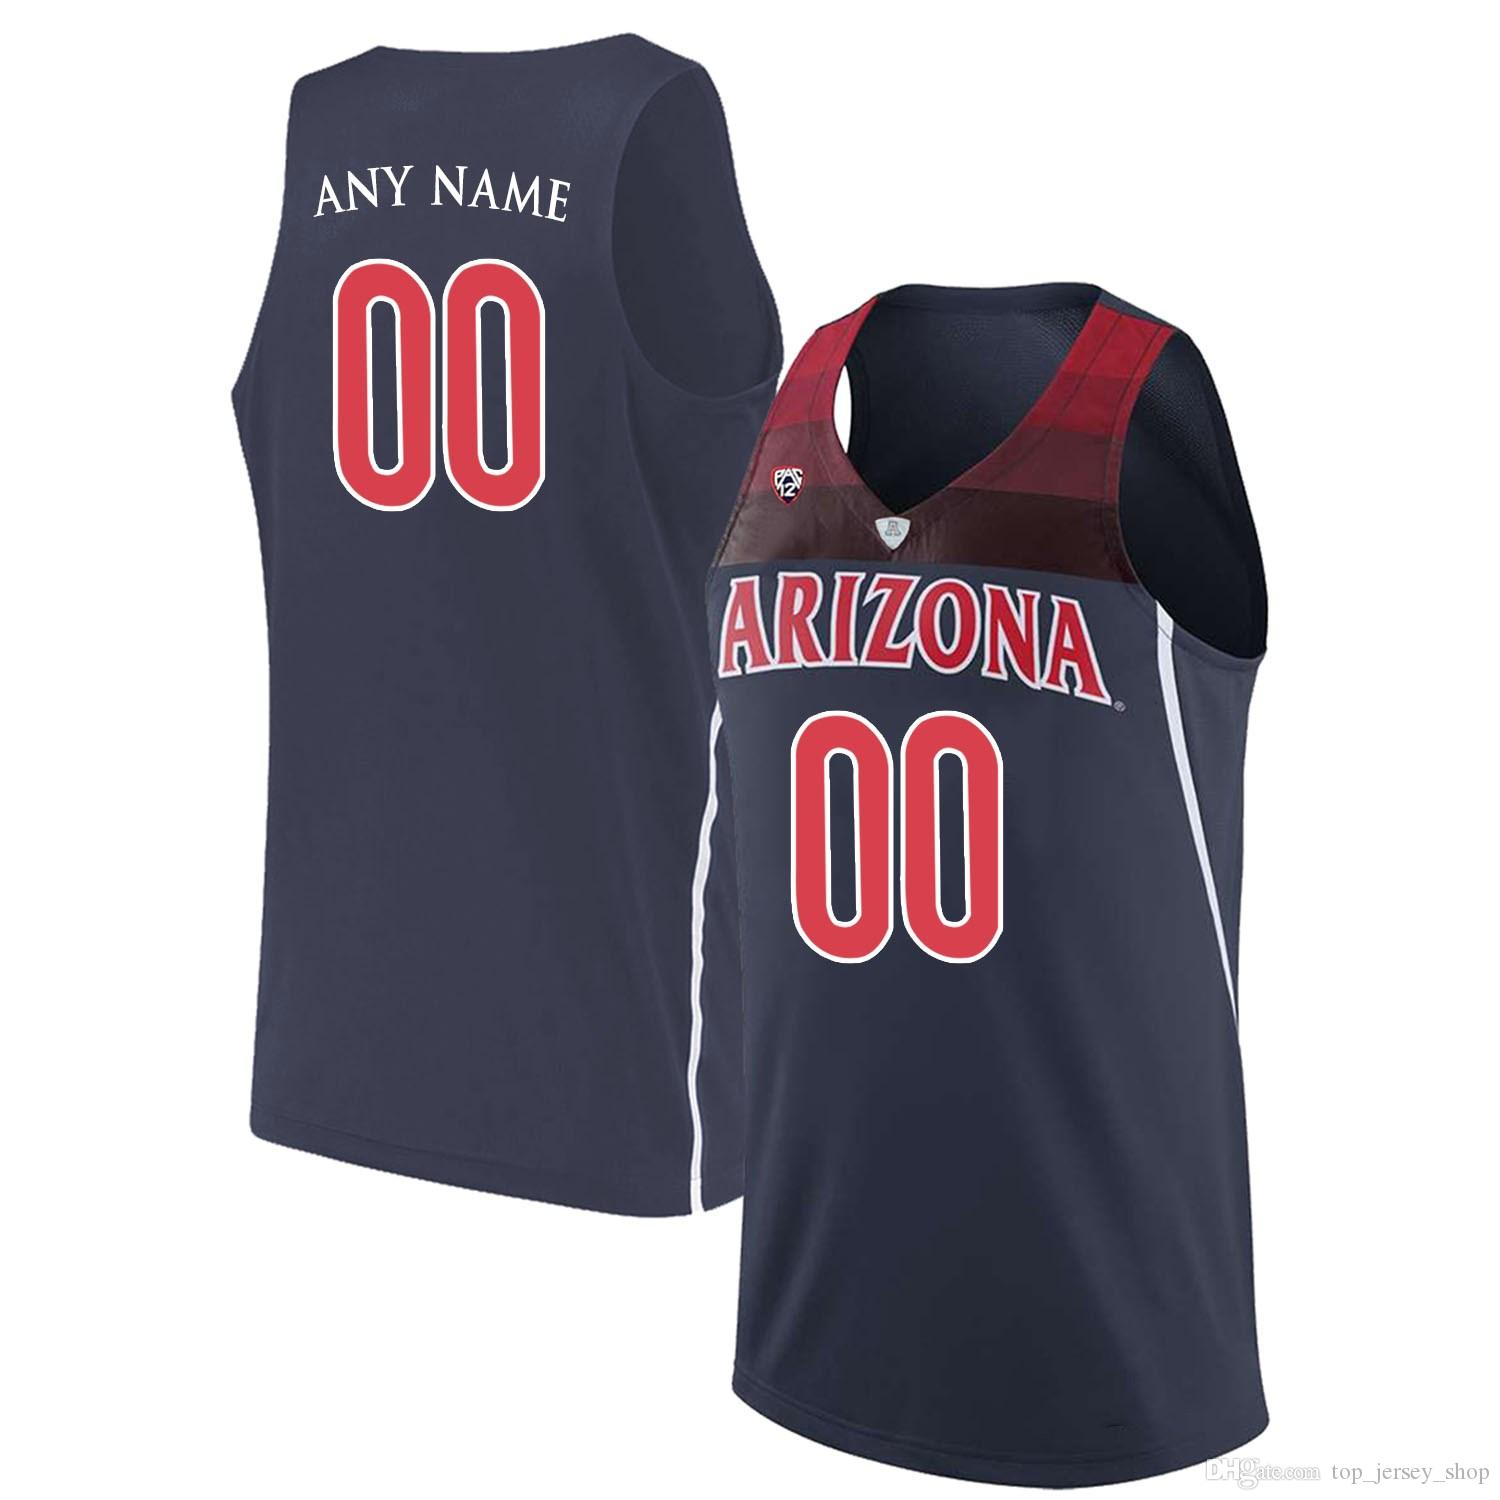 39657632a 2019 Men Customized Arizona Wildcats College Jersey Custom Made Any Name  Number Stitched Navy Blue White Red STITCHED Basketball Jerseys Cheap From  ...